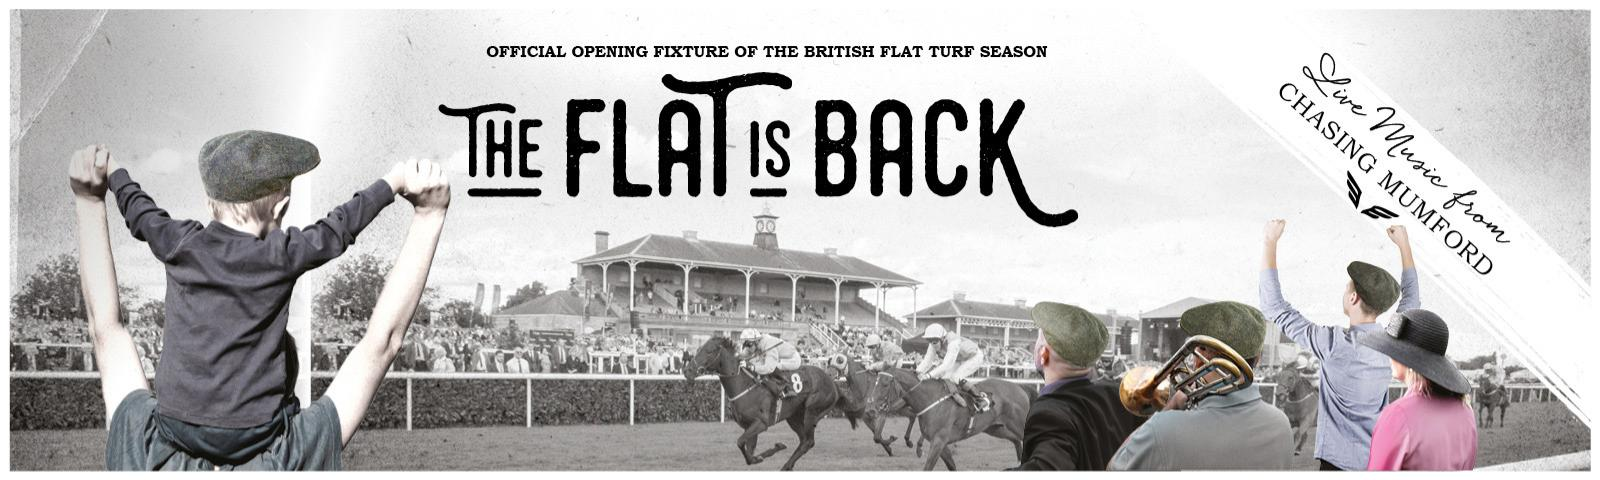 The Flat is Back, Join us for the Opening Event of the British Flat Turf Season